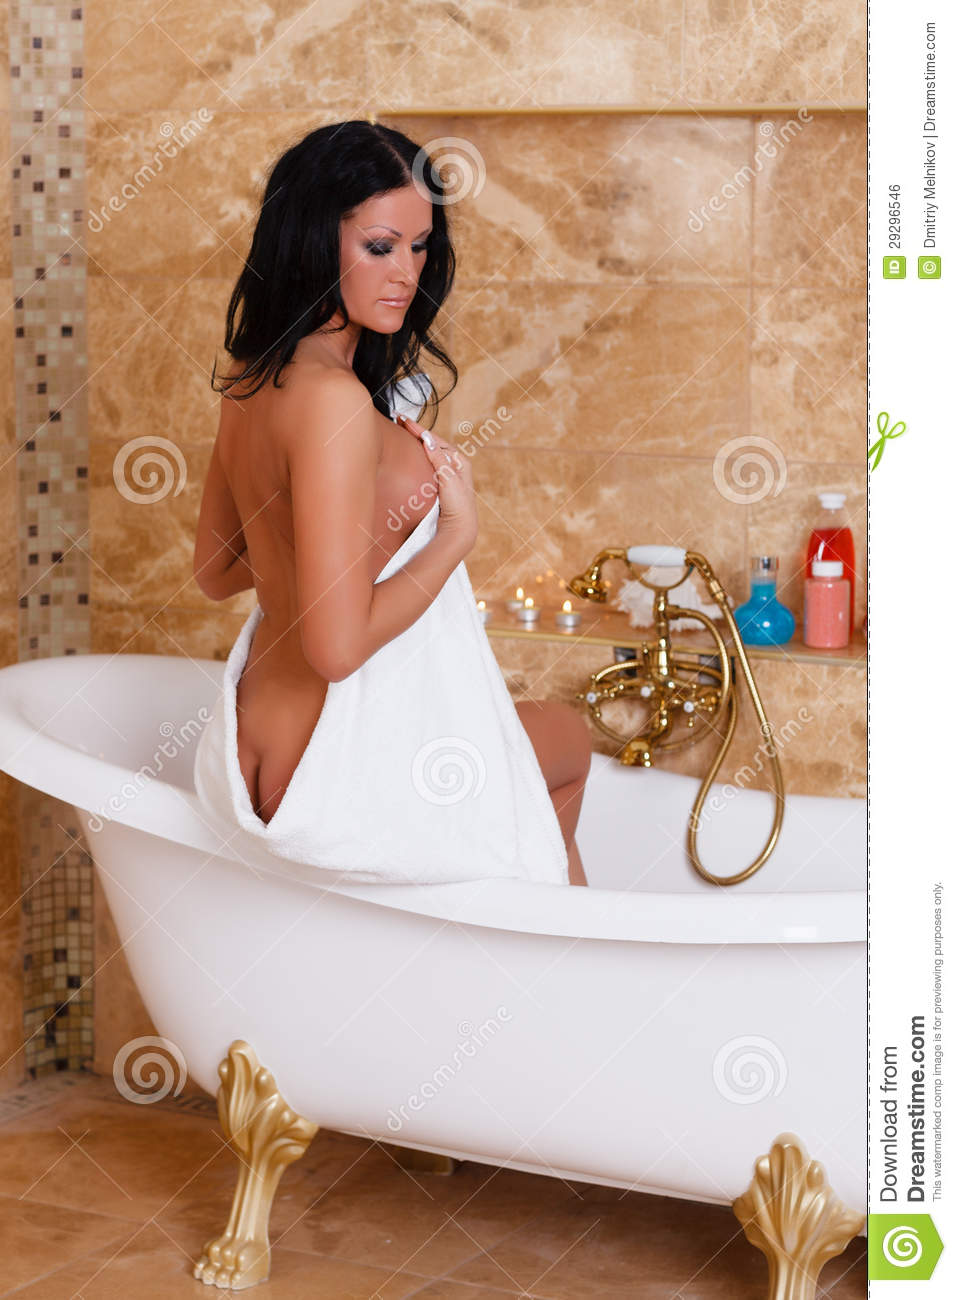 Young woman with towel in bathroom. Young Woman With Towel In Bathroom  Royalty Free Stock Image